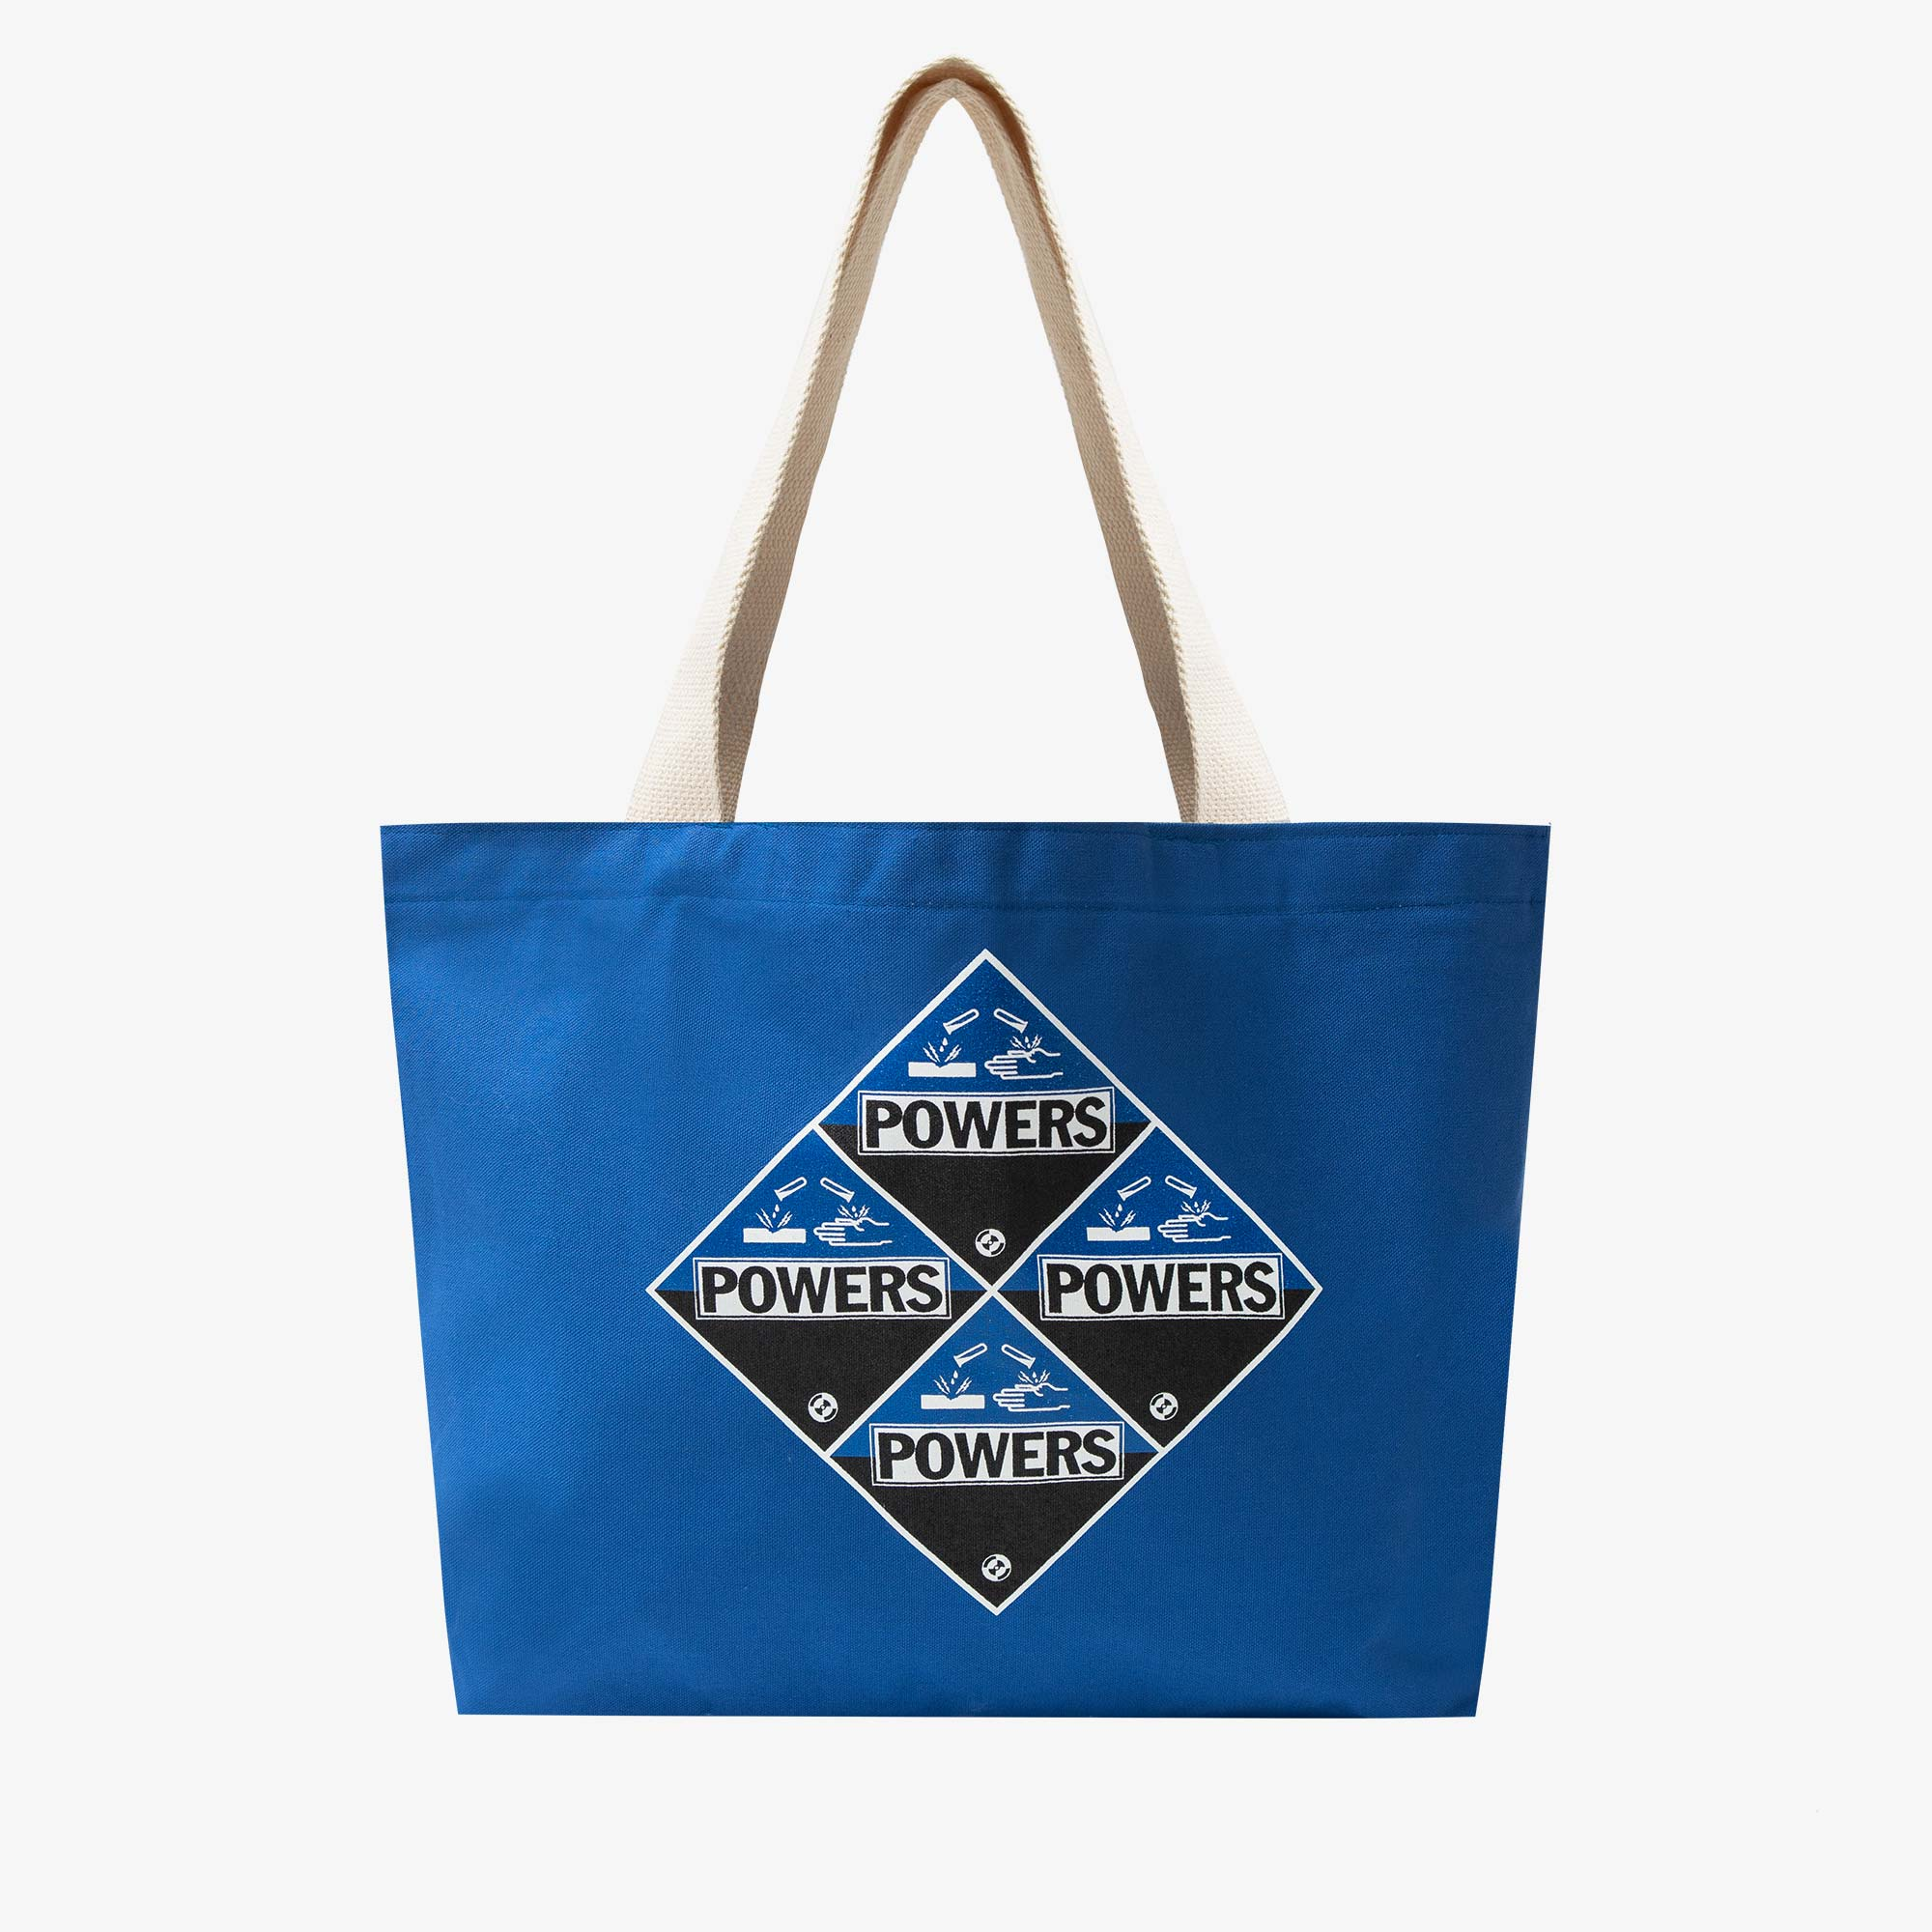 Powers Supply Corrosion Tote Bag - Canvas / Blue 1